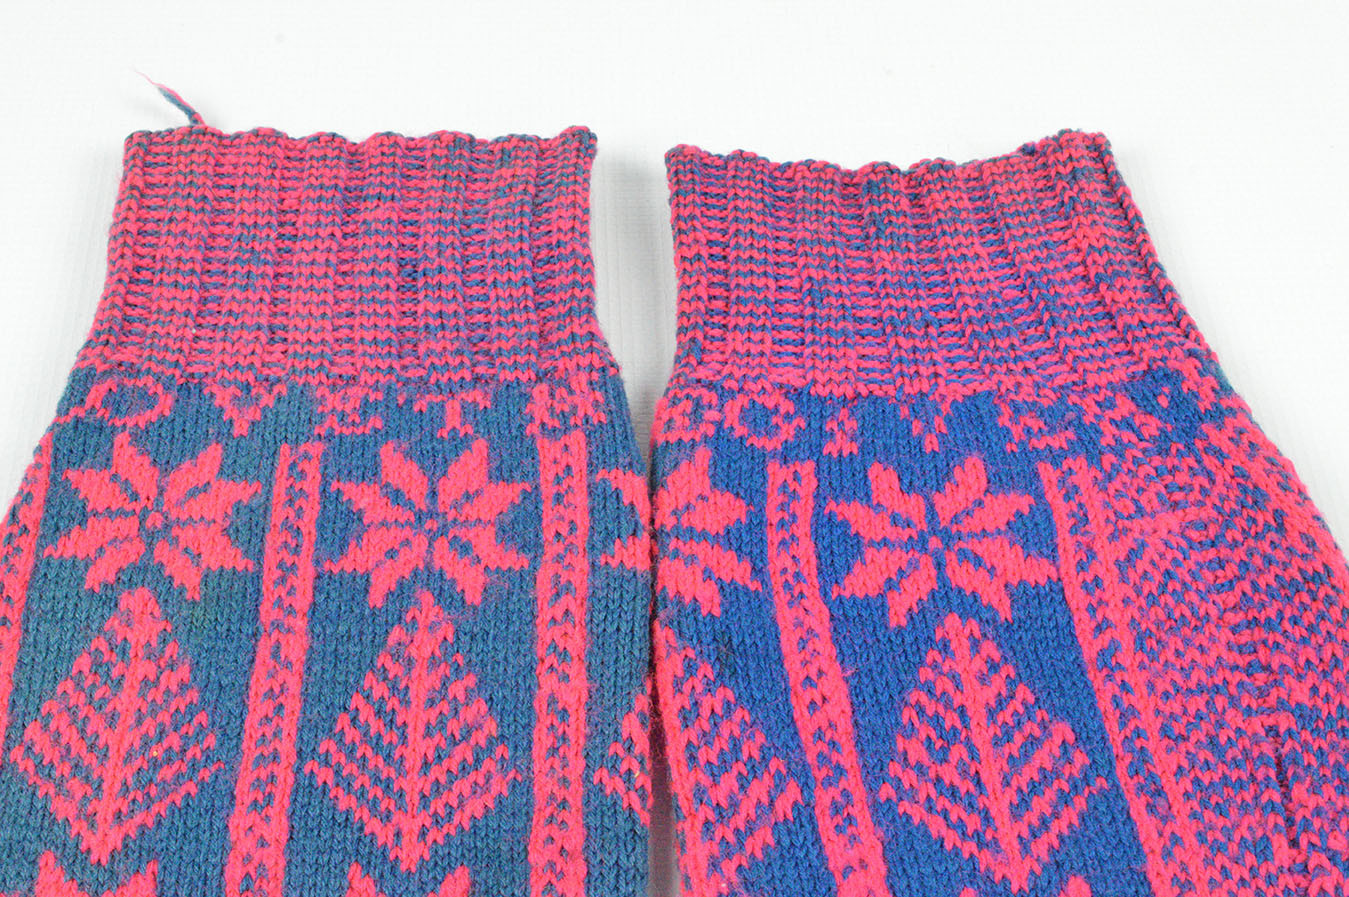 Outer Hebrides Wedding Stockings (detail)